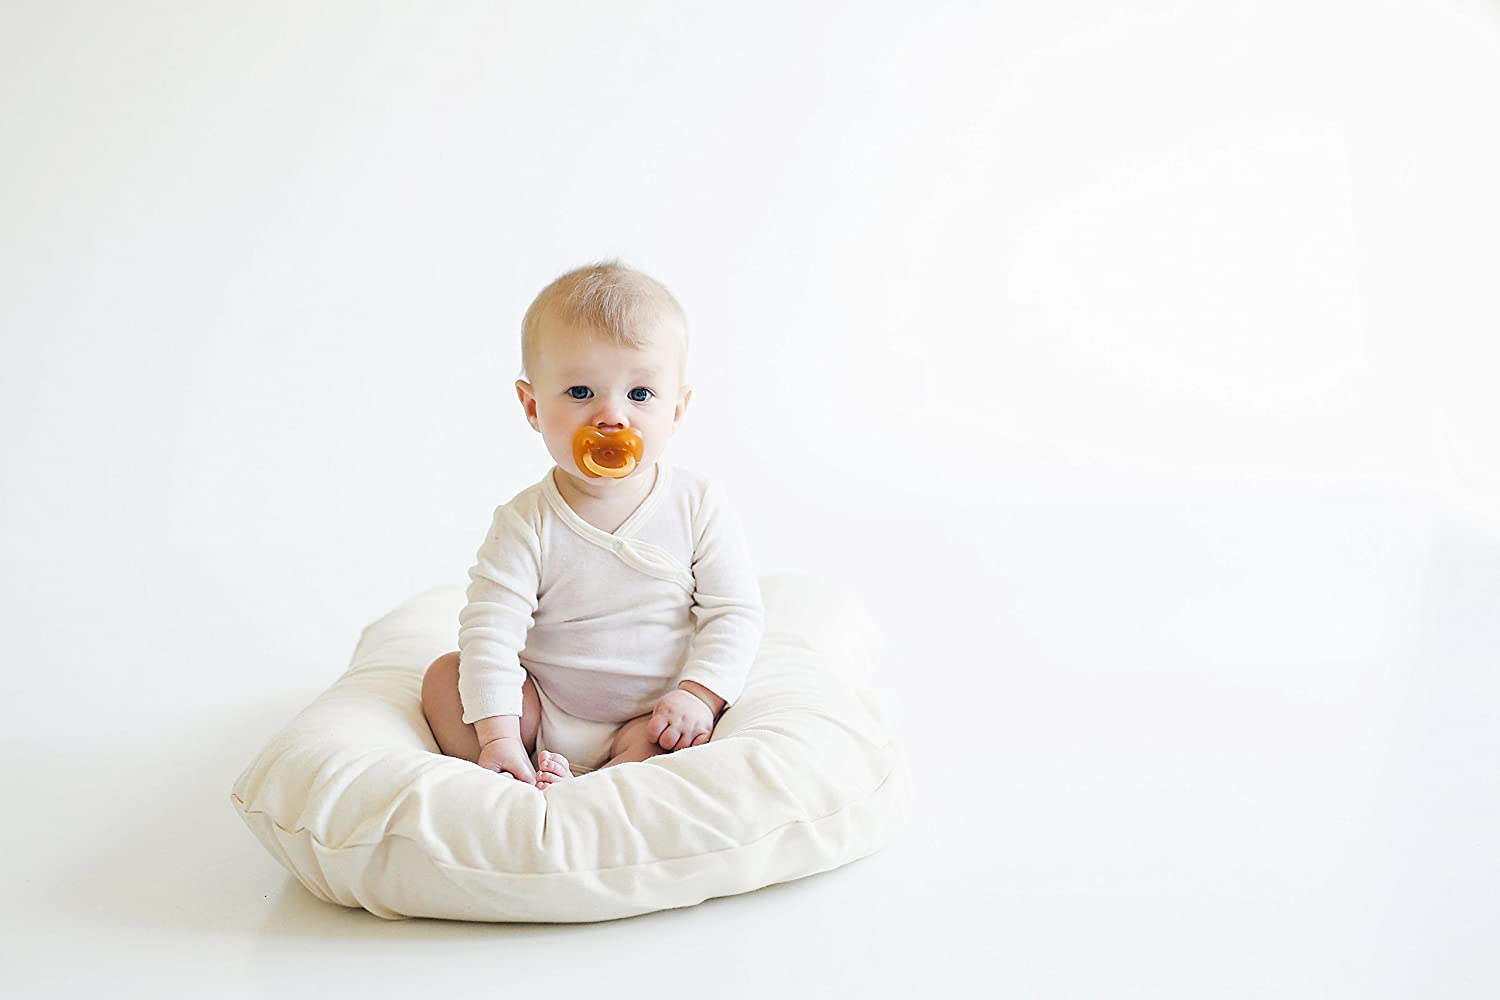 Snuggle Me Organic | The Original Baby Lounger, Infant Co-Sleeping Cushion, Portable Play Mat and Travel Bed for Newborn to 6 Months by Snuggle Me ...